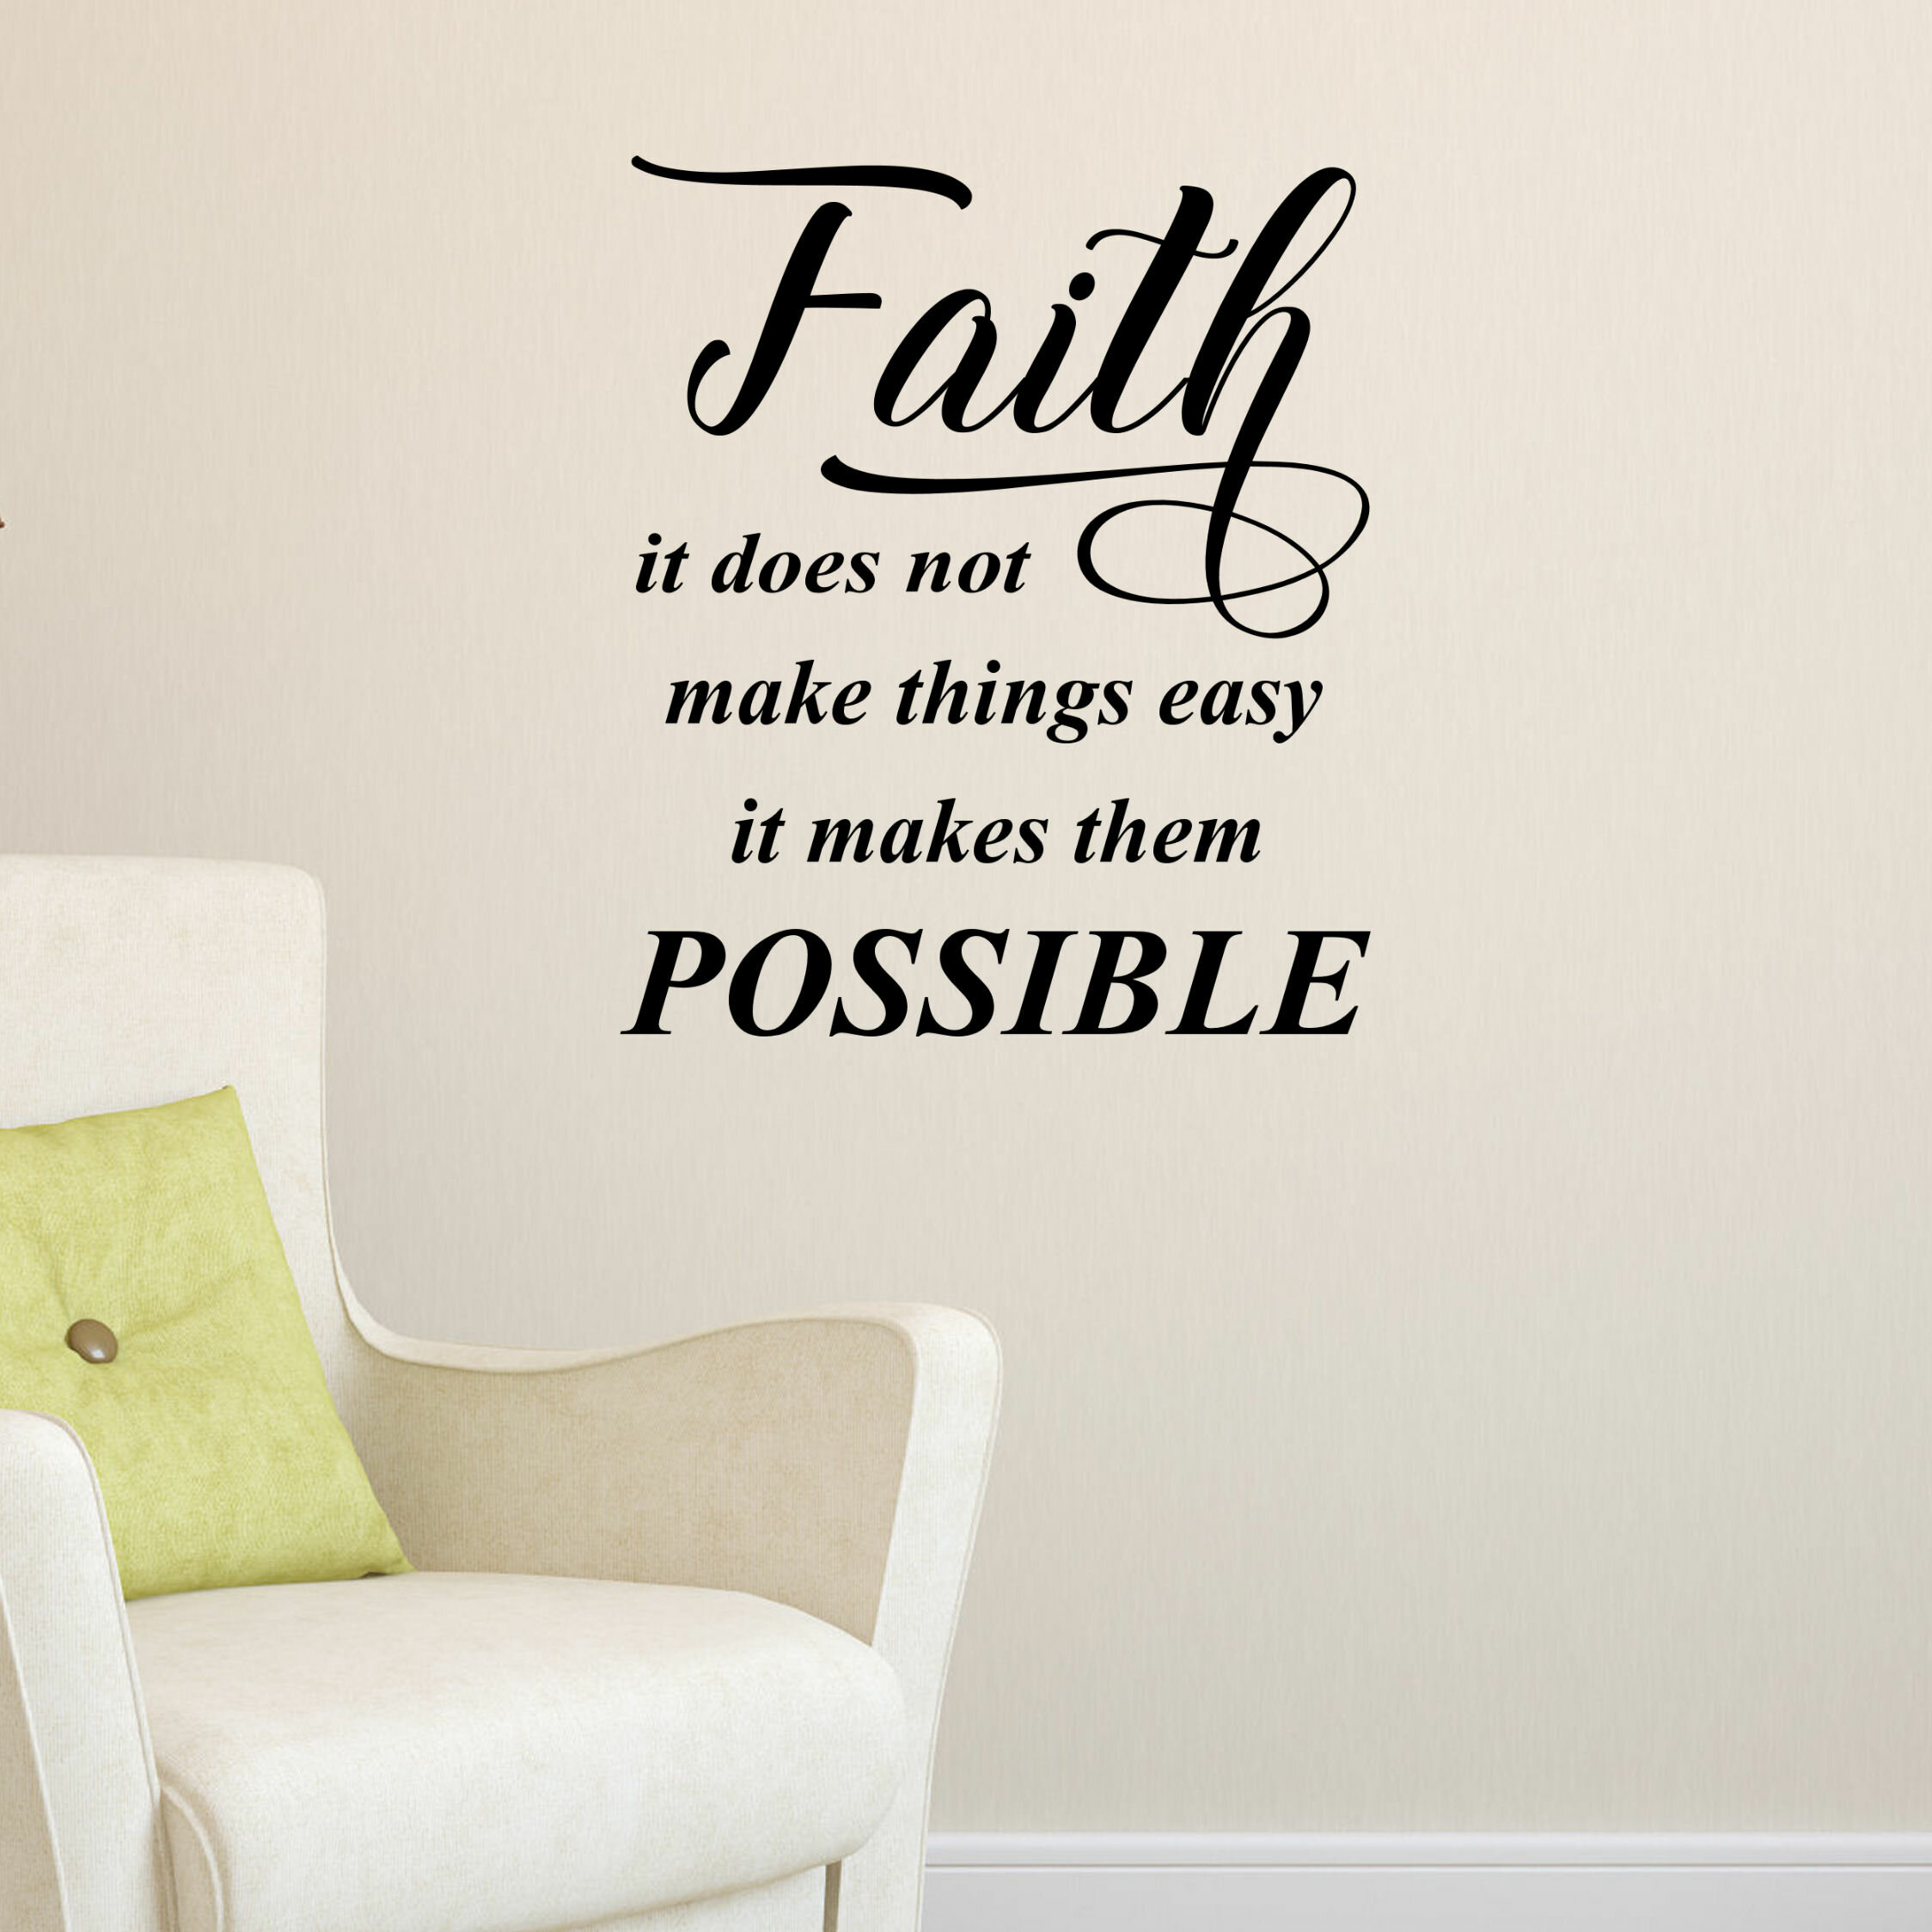 Decalthewalls Faith It Does Not Vinyl Wall Decal Wayfair